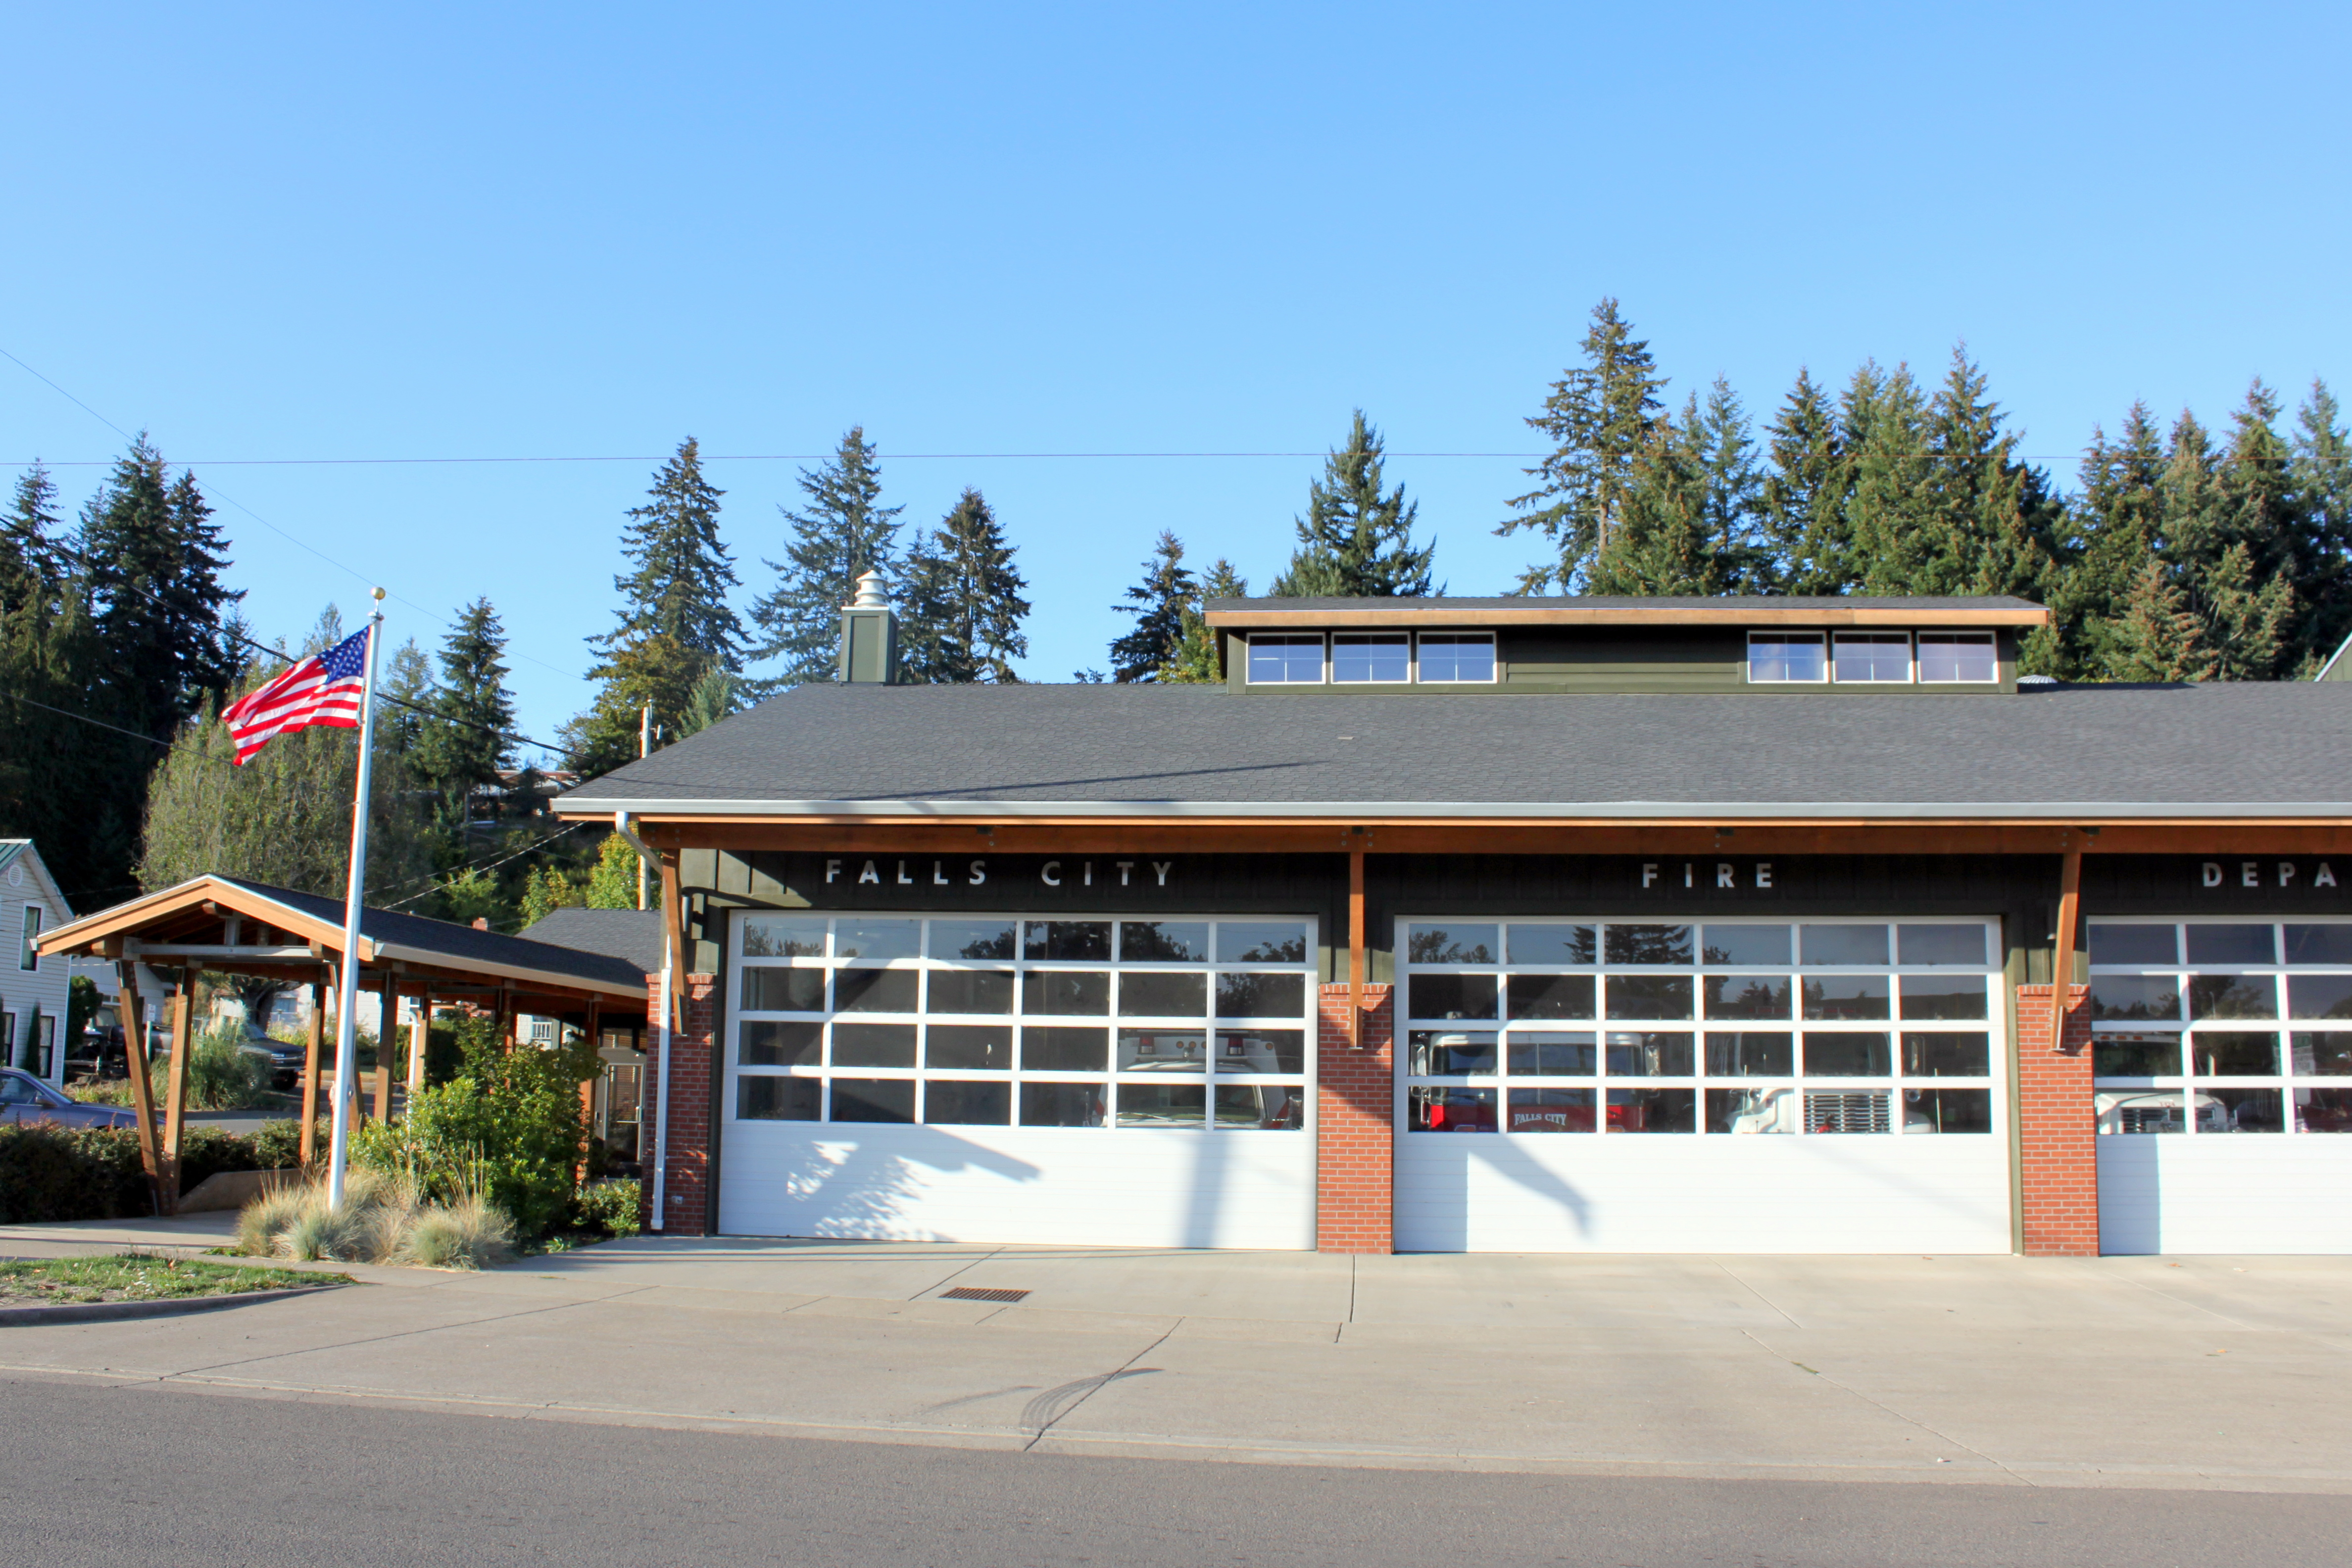 File:Fire department - Falls City Oregon.jpg - Wikimedia Commonsfalls city city